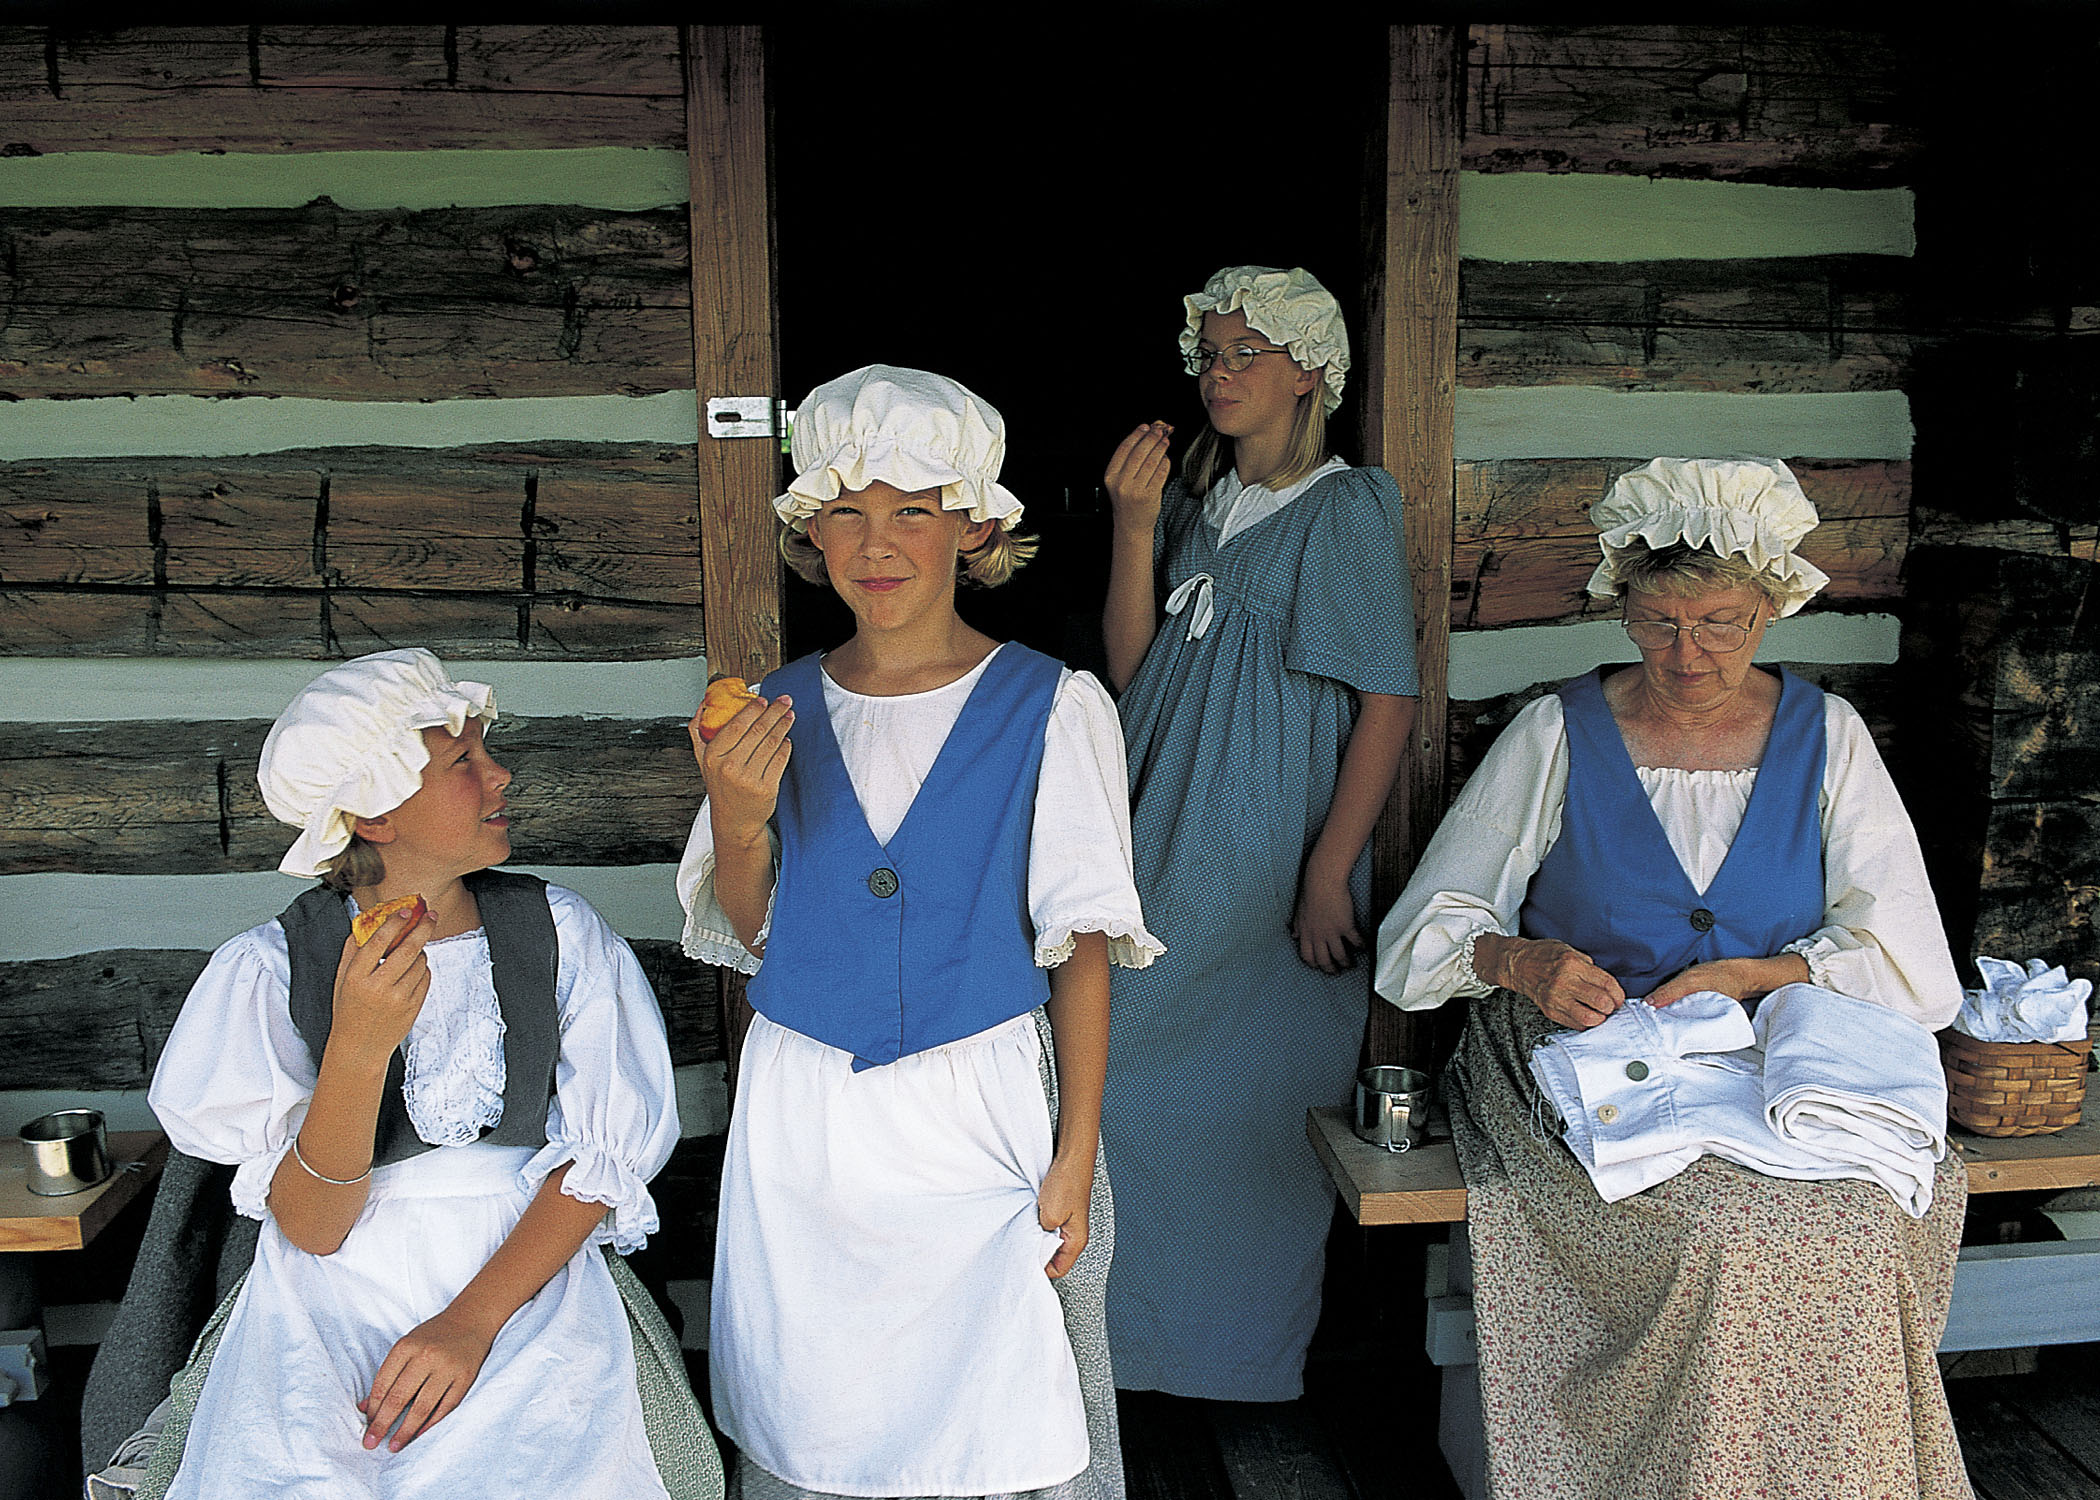 Women at Fort Atkinson in traditional dress